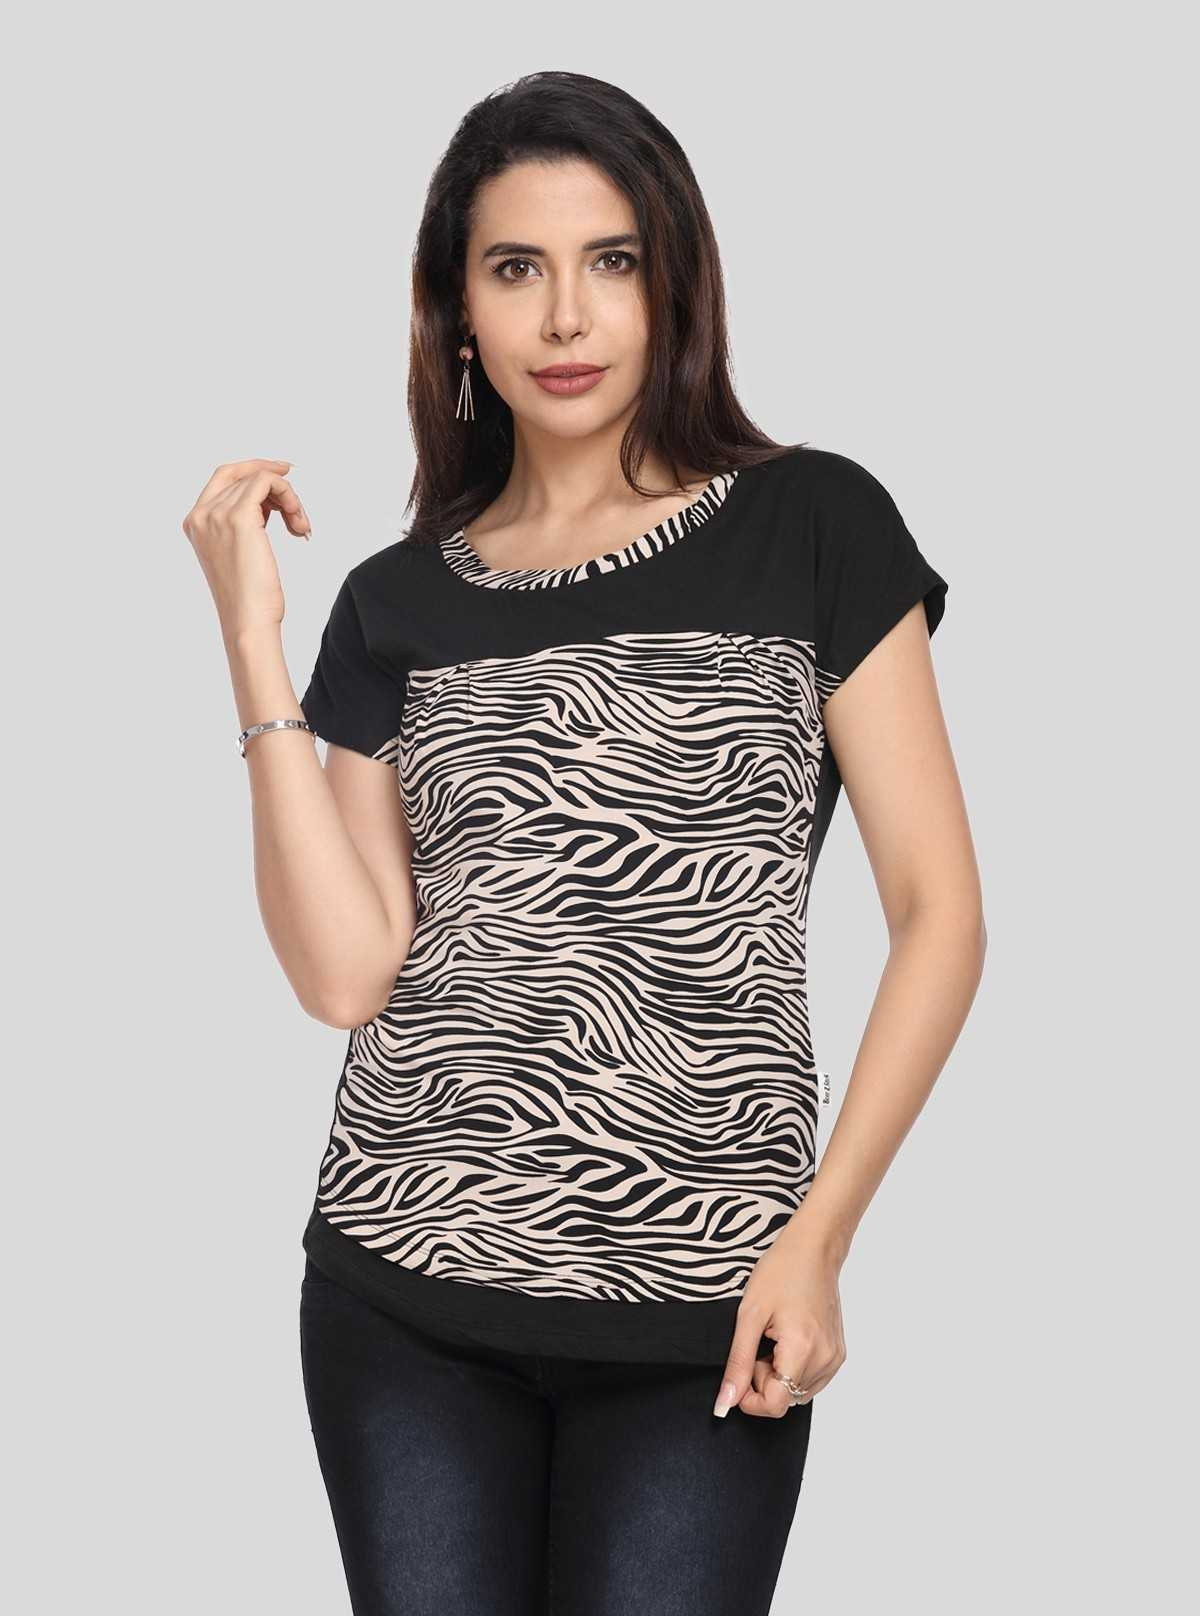 Zebra Print Black Cut & Sew Womens Top